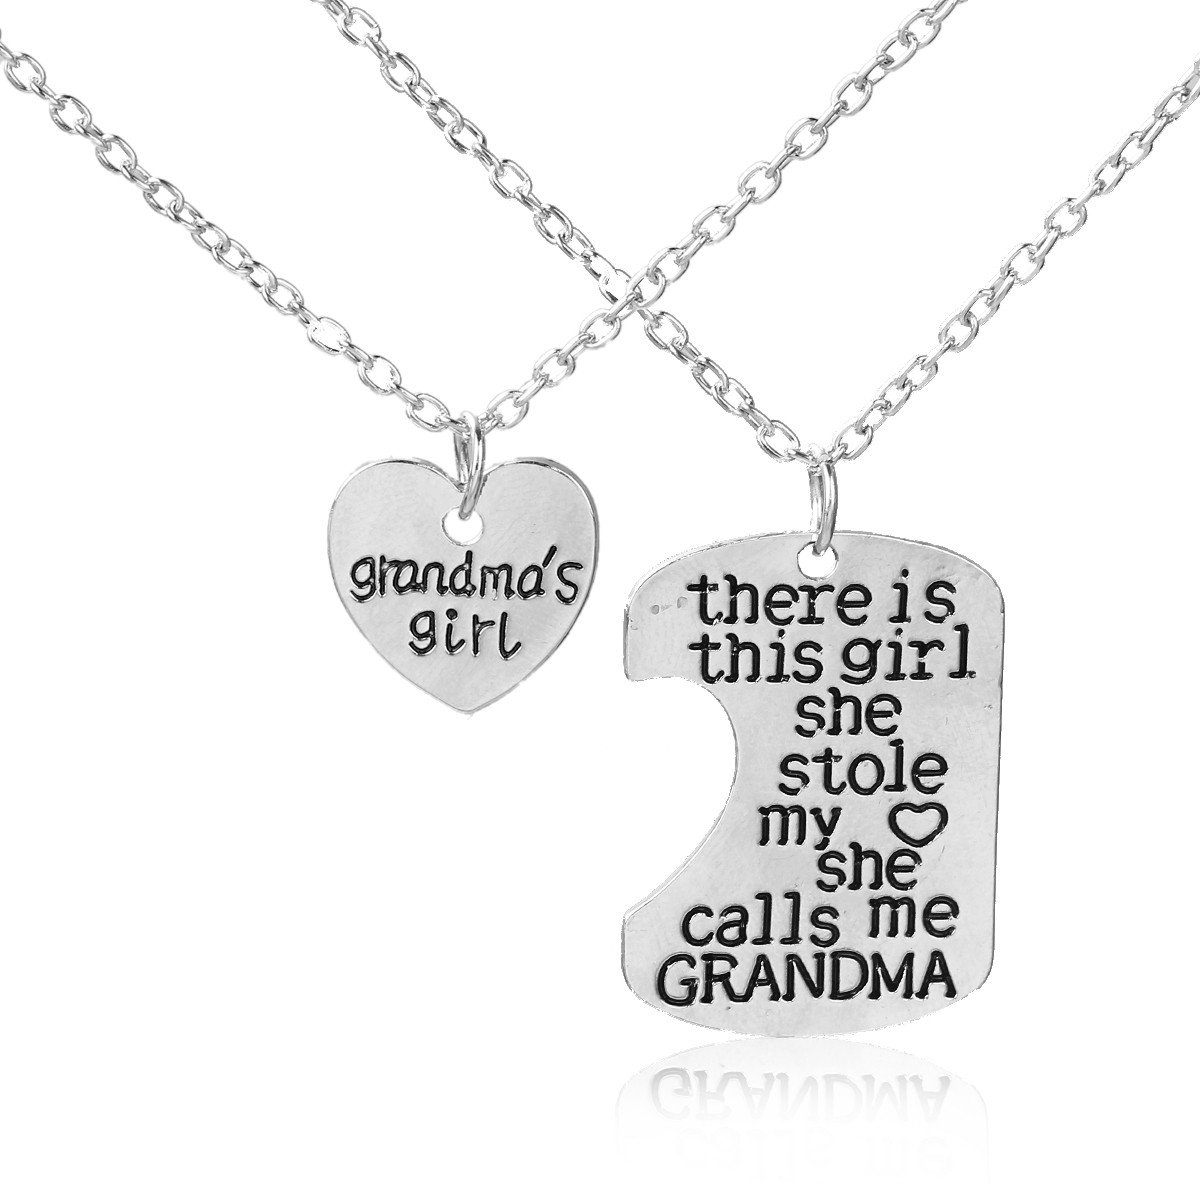 "SEXY SPARKLES 2 piece necklace "" Grandma's Girl ""and ""There is this girl she stole my heart she calls me Grandma"" 2 Pc Jewelry Necklace"